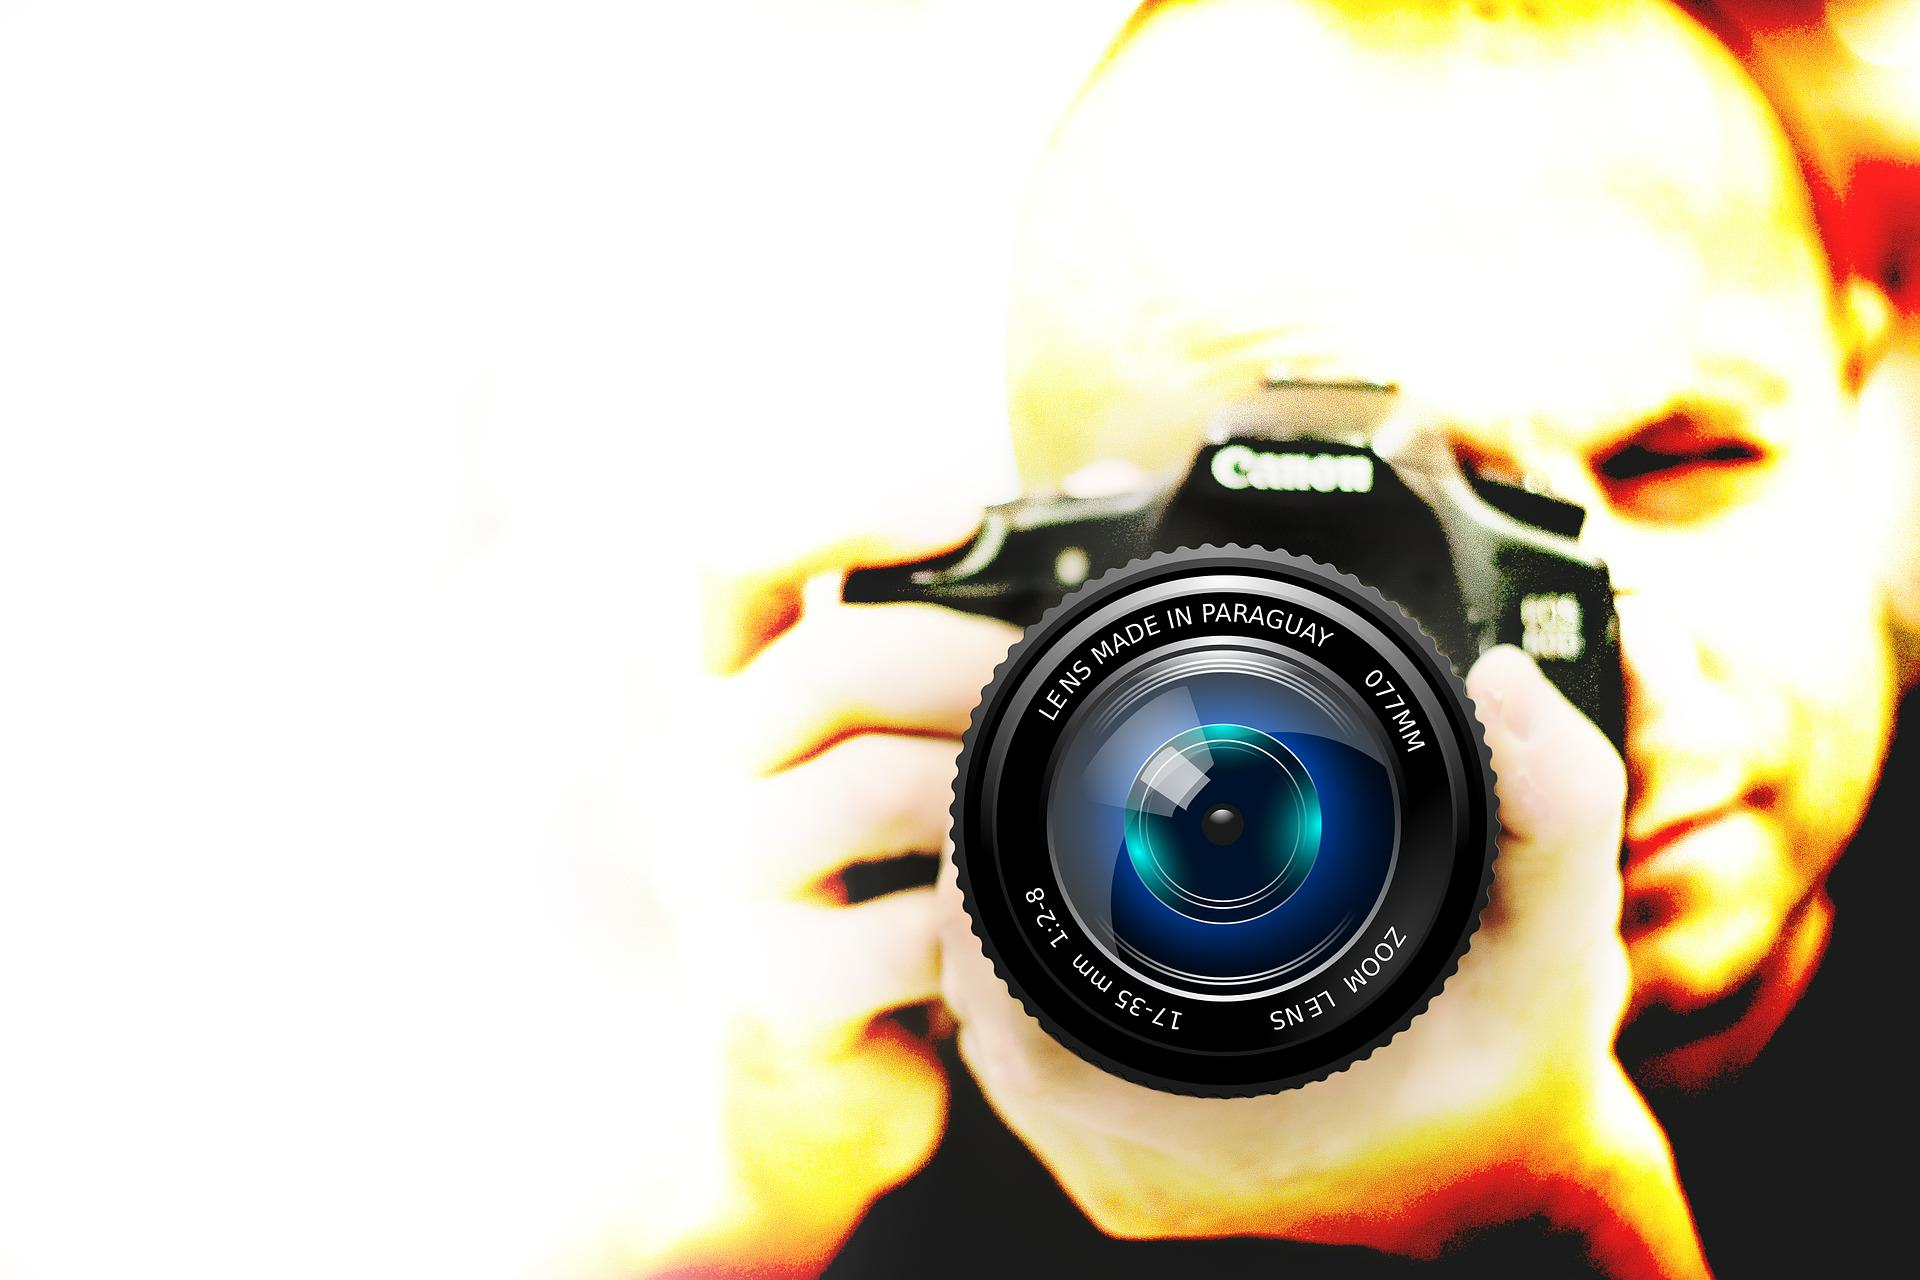 Photography with Good Quality Cameras